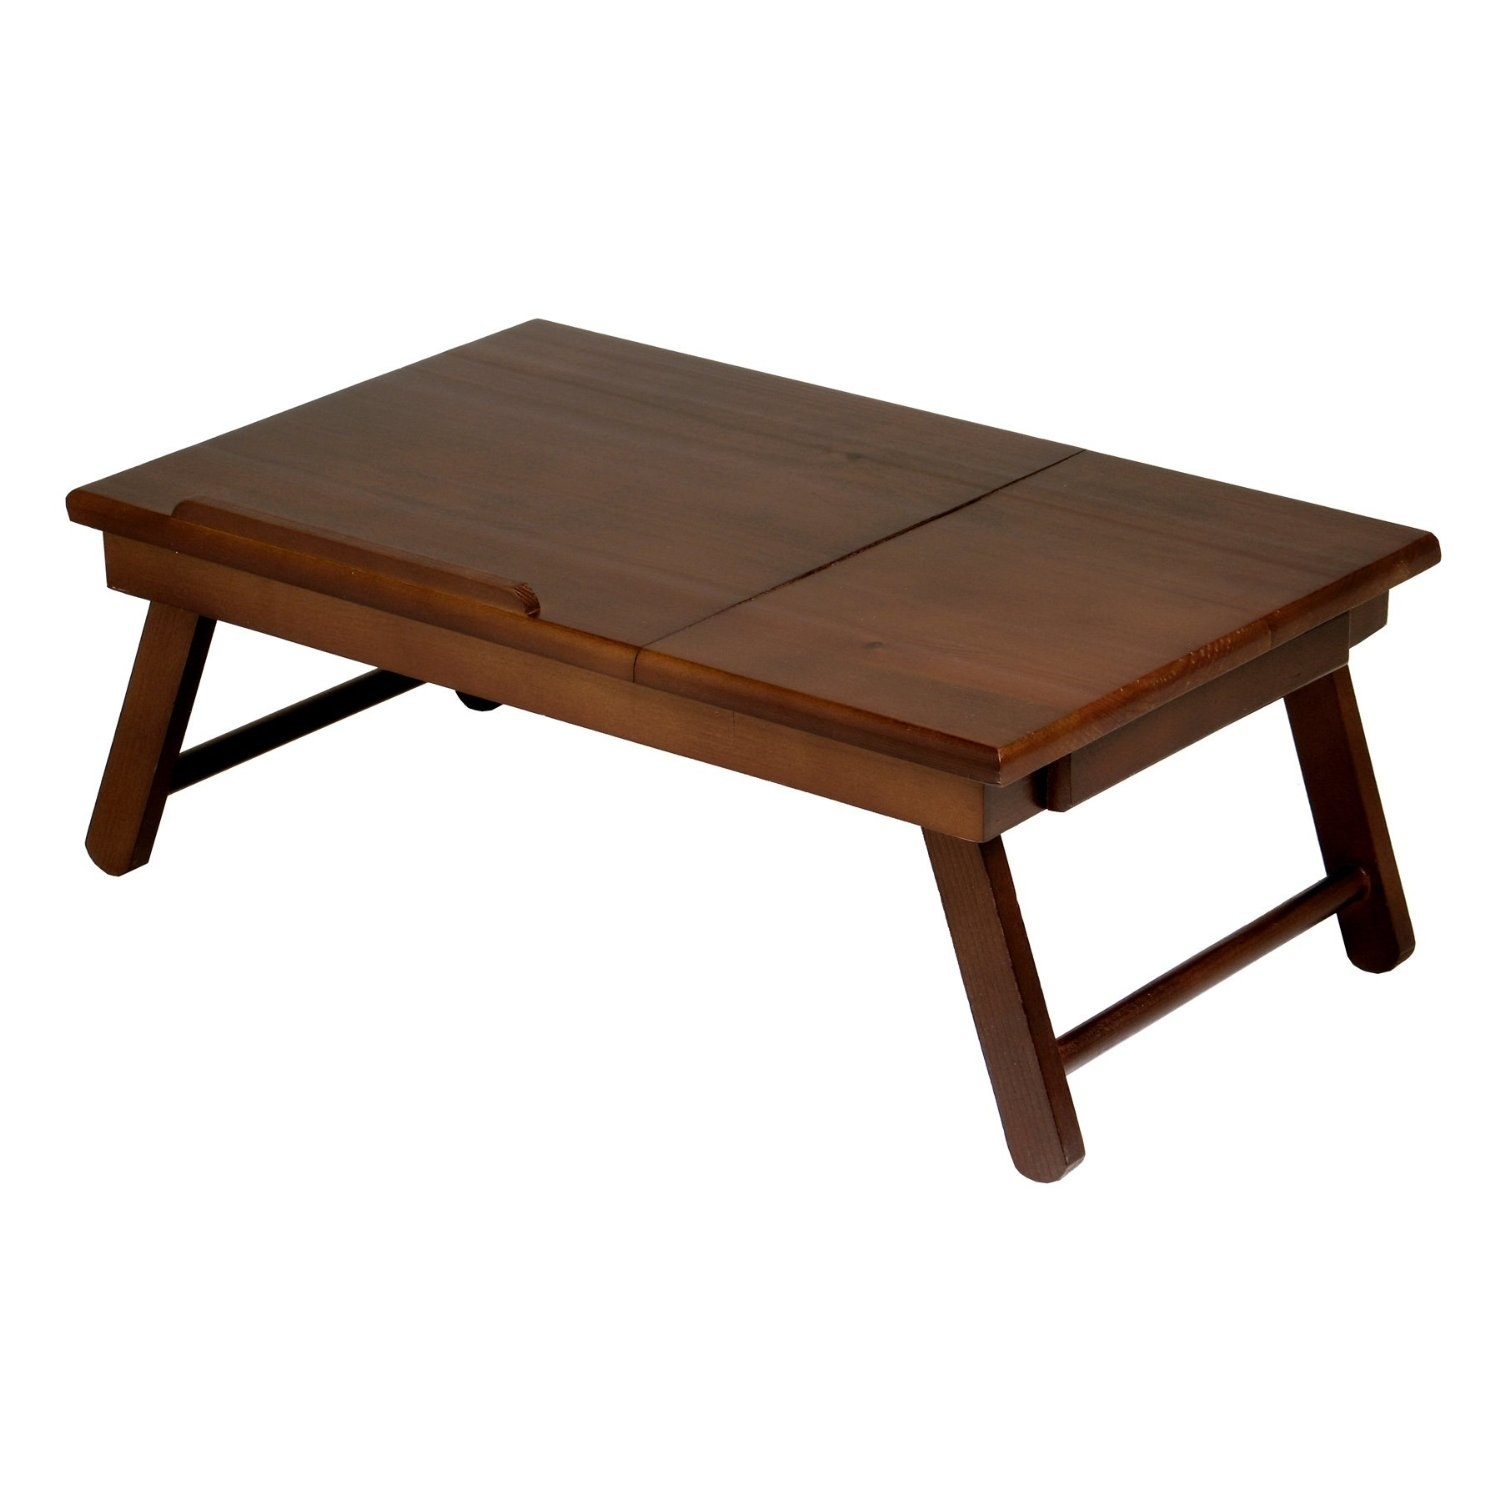 this lap desk with hidden storage and foldable legs thatu0027s marvelous for days when you refuse to get out of bed